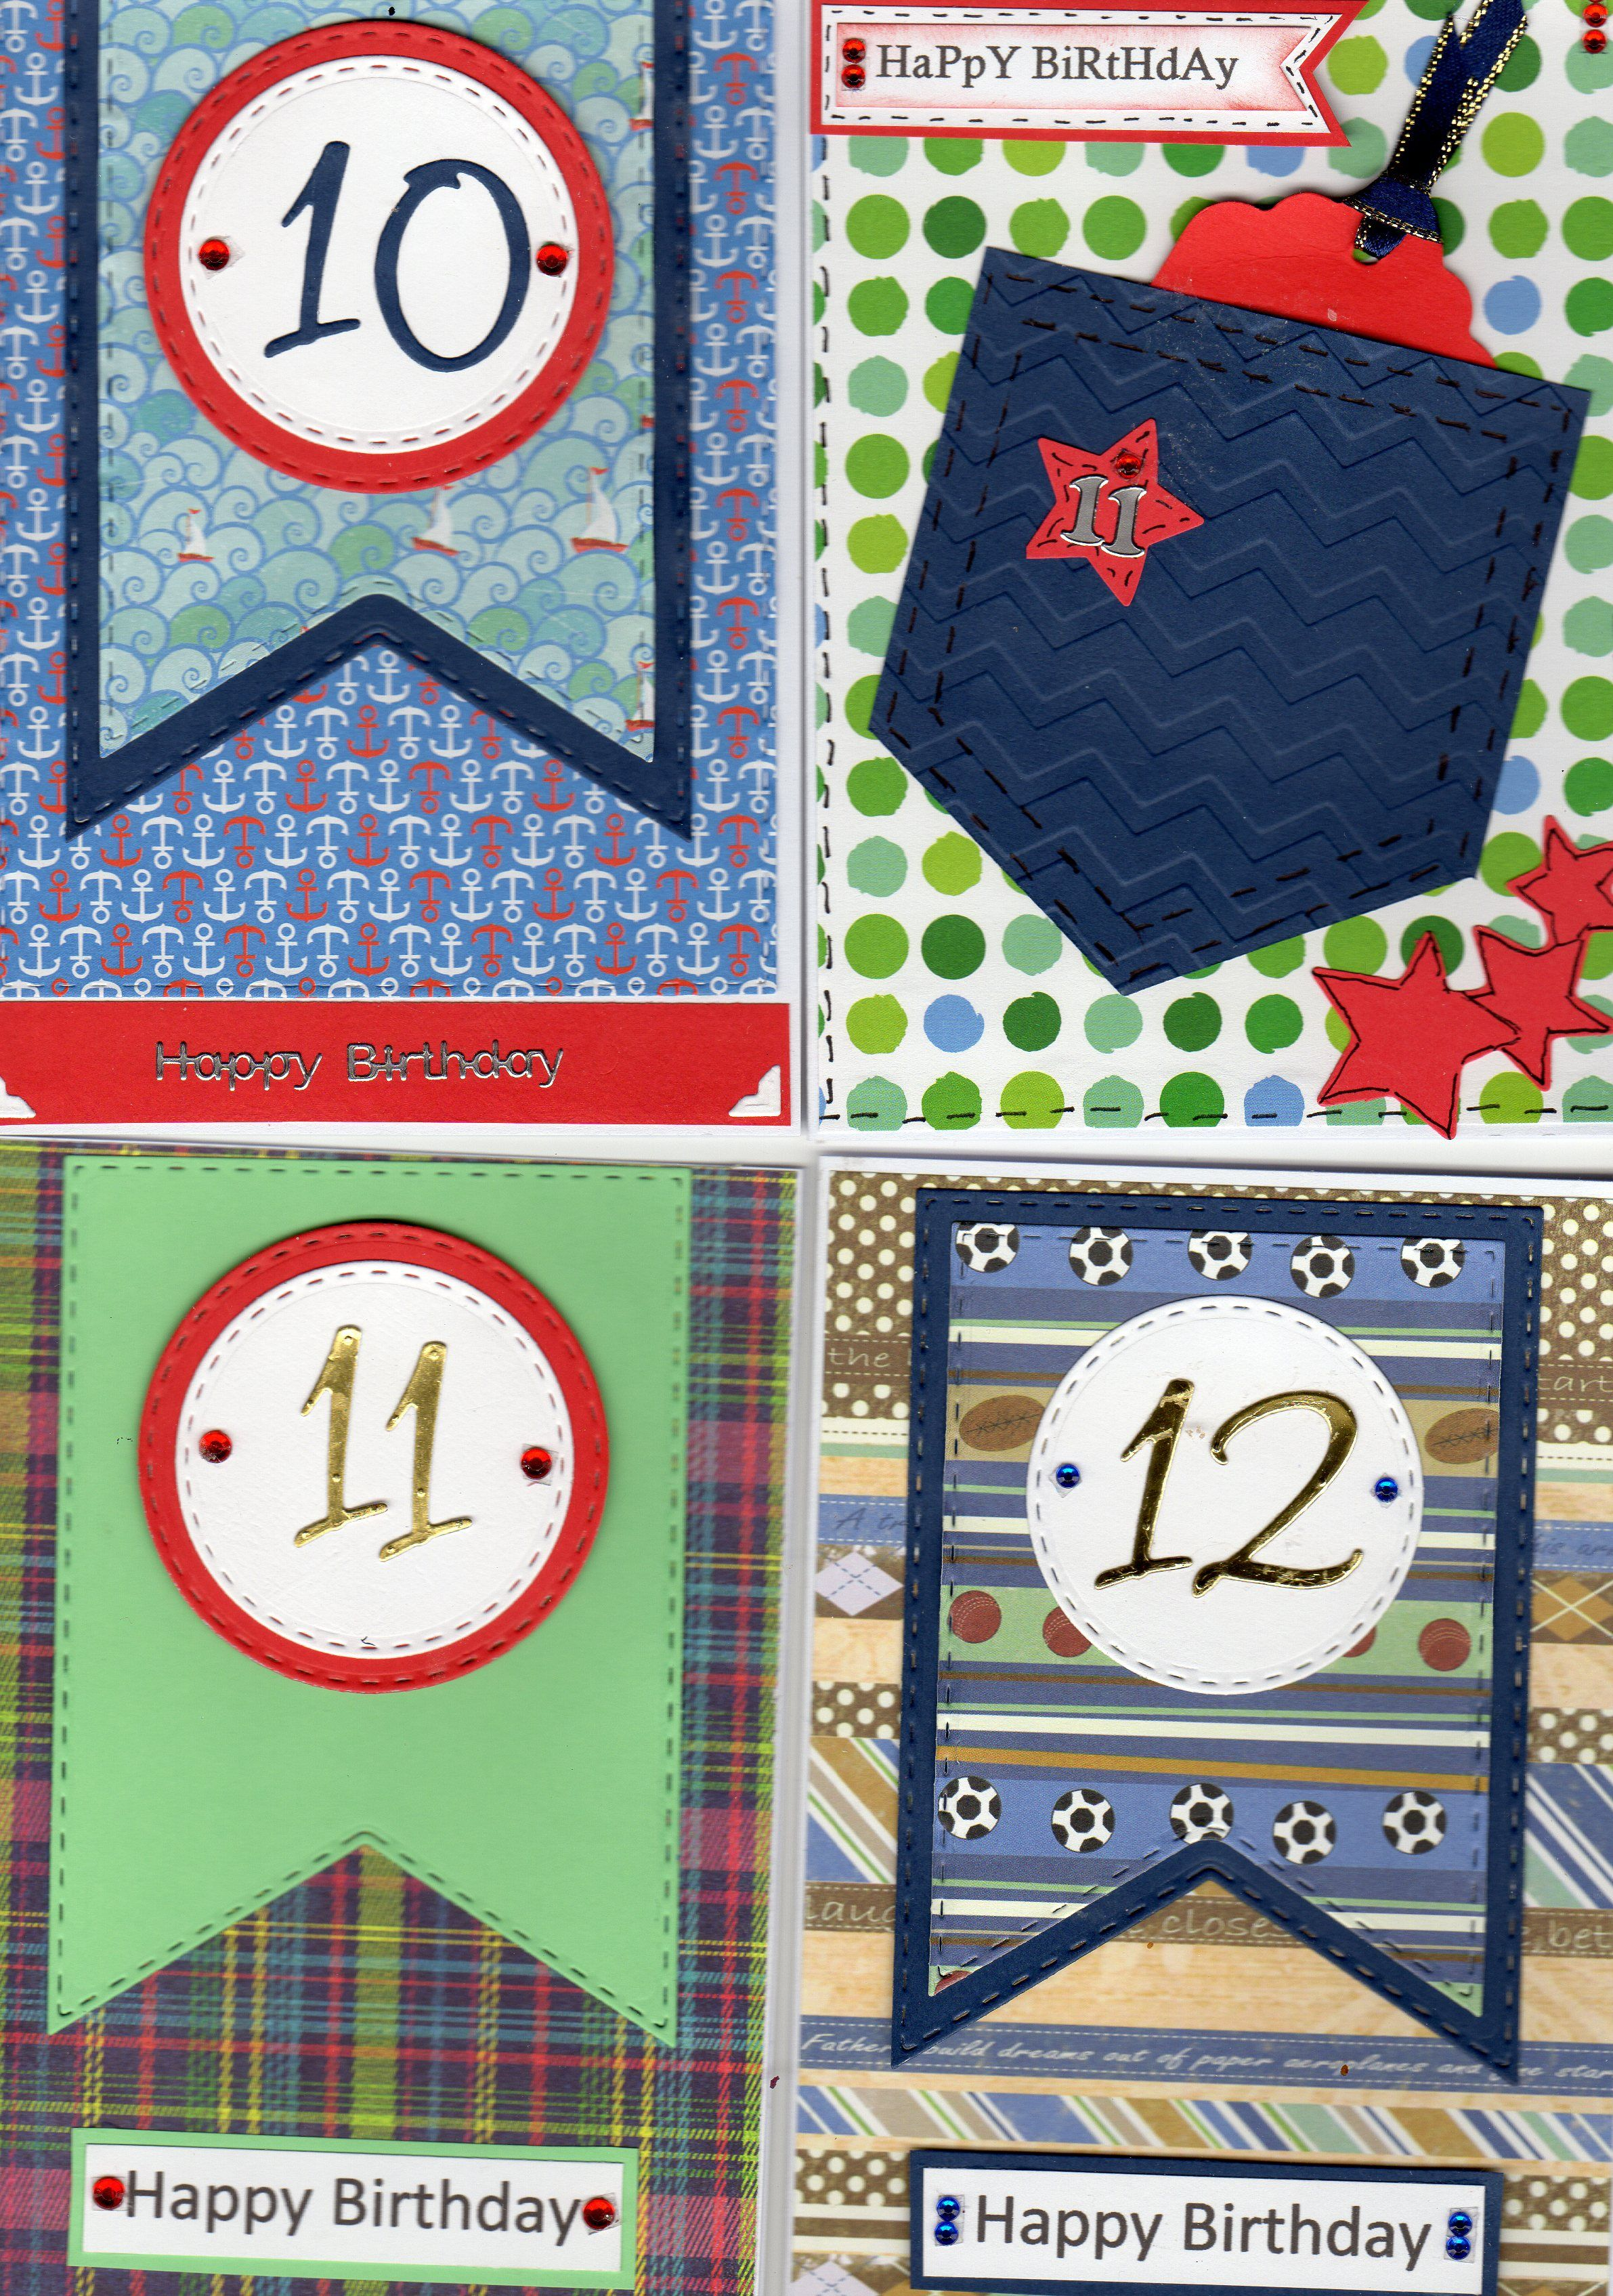 10 11 And 12 Year Old Boys Birthday Cards Using The Justrite